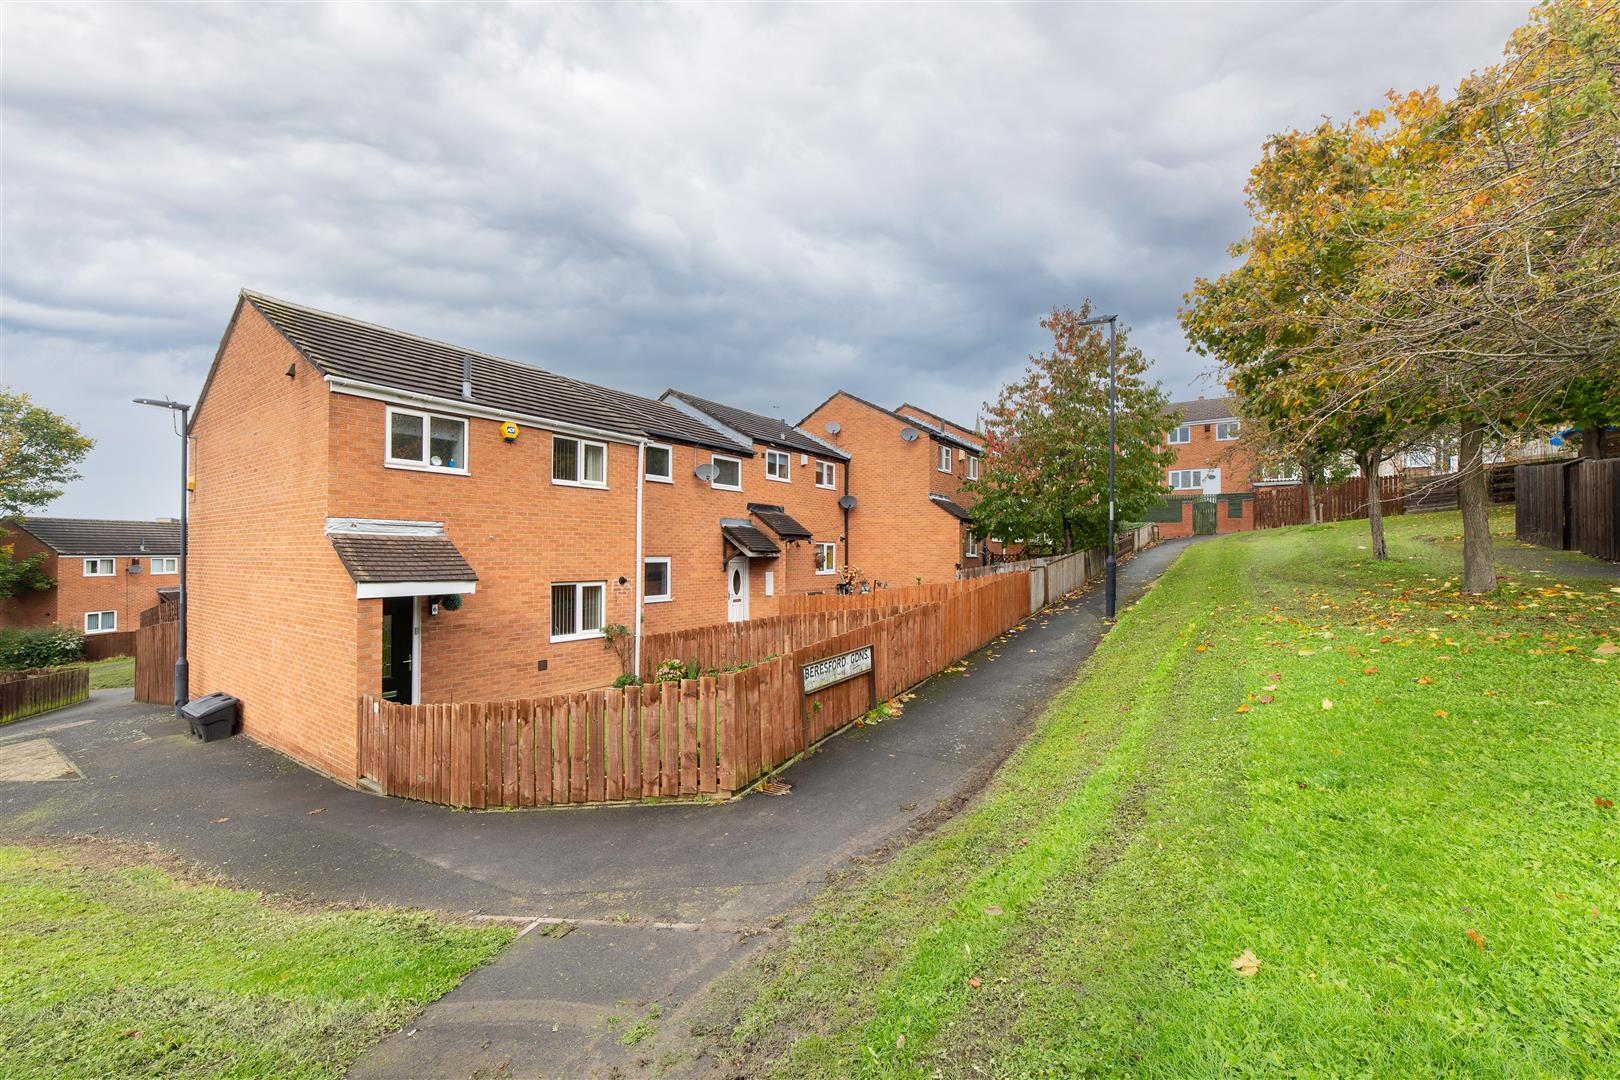 2 bed terraced house for sale in Newcastle Upon Tyne, NE6 2EL, NE6